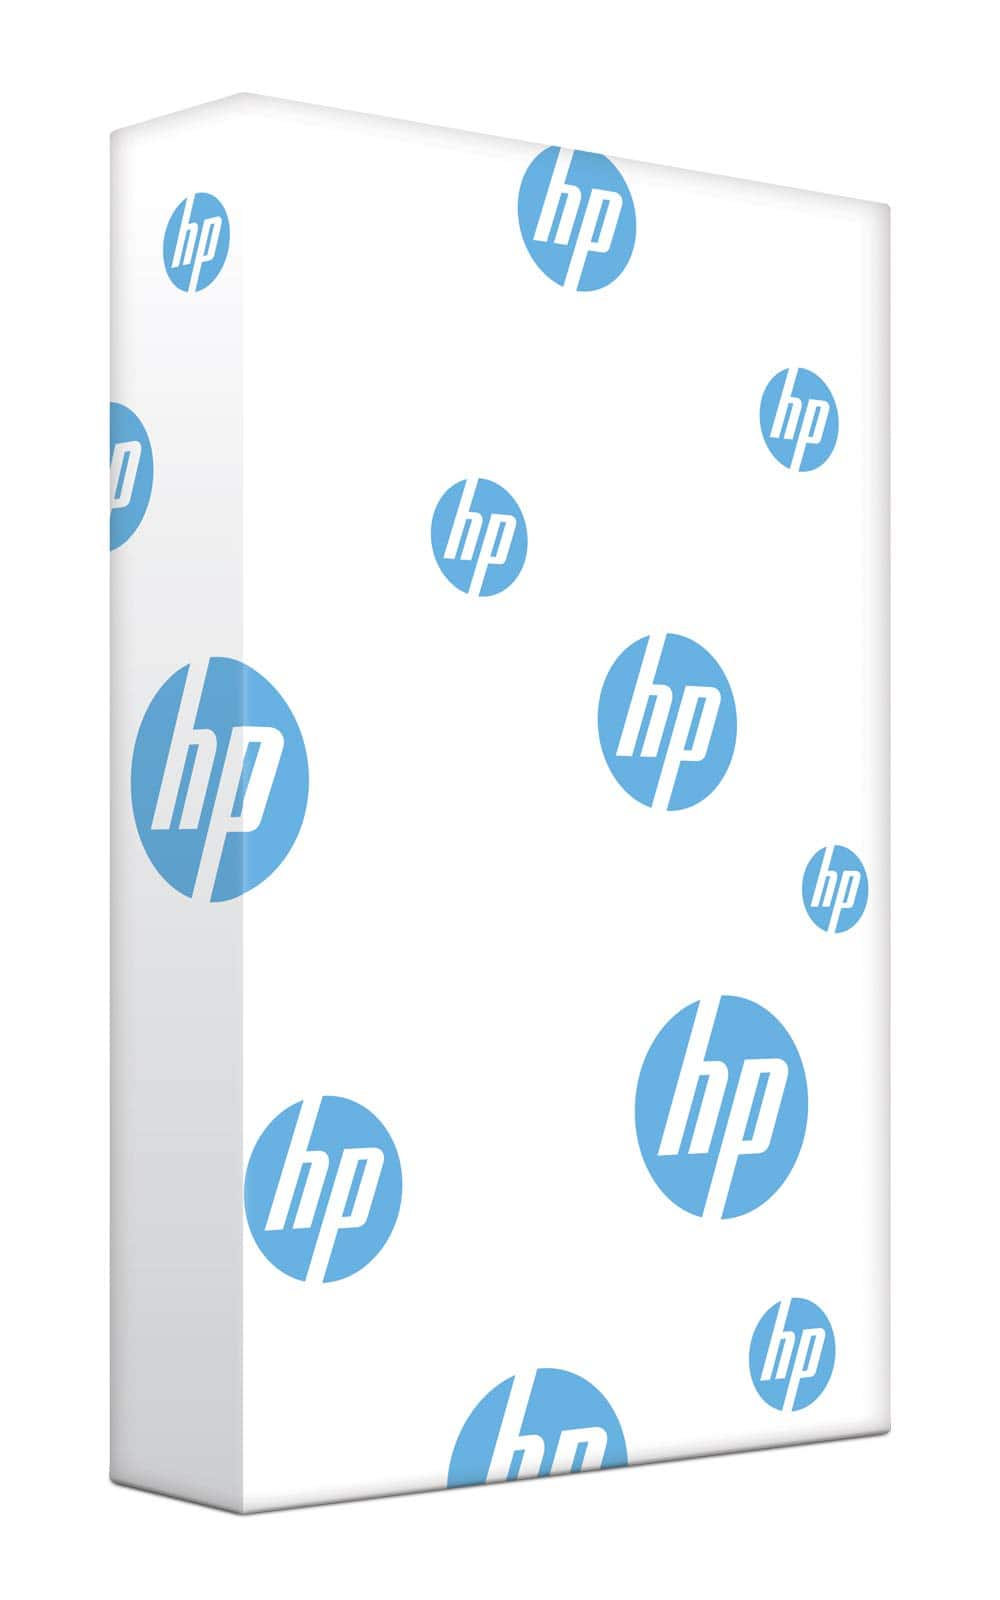 HP Printer Paper   8.5 x 14 Paper   Office 20 lb   1 Ream - 500 Sheets   92 Bright $10.04 at Amazon